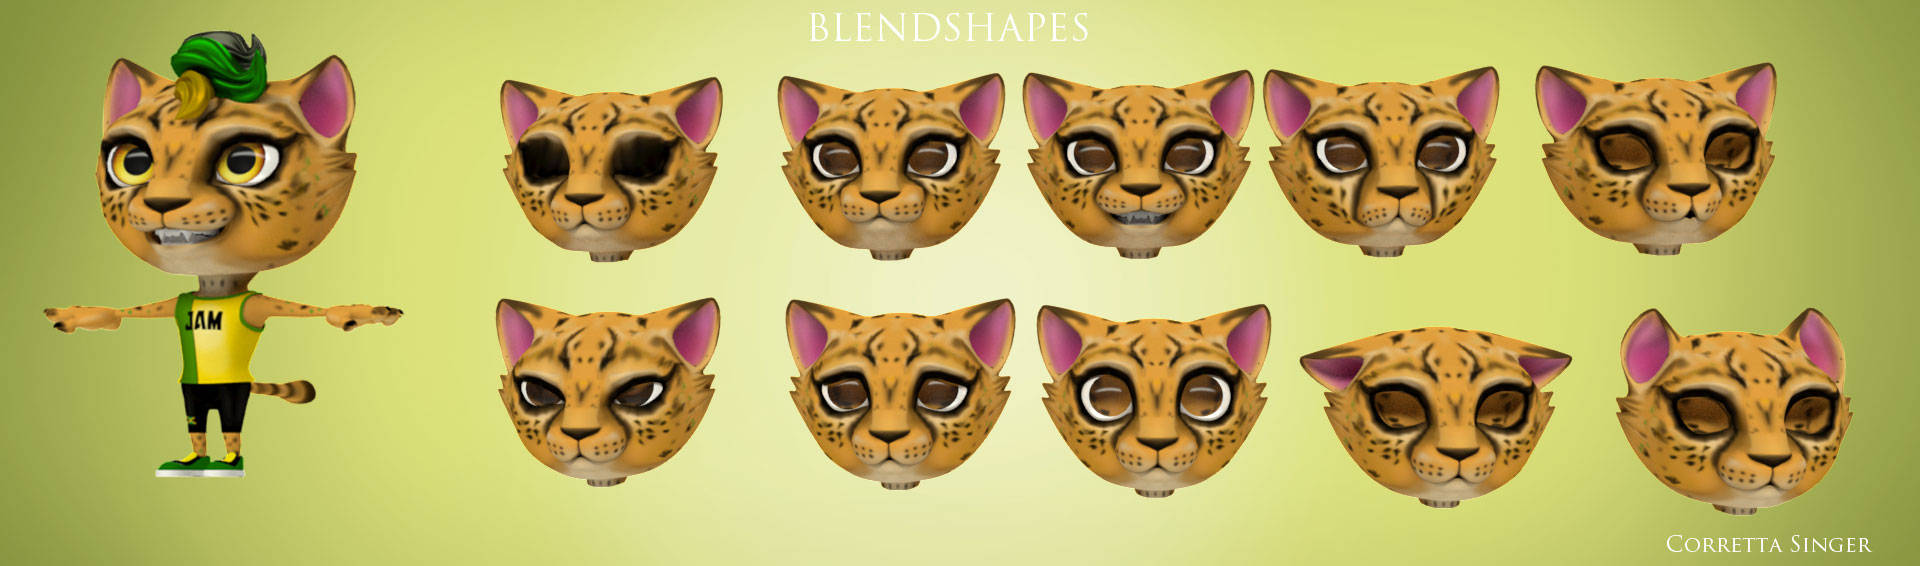 7blendshapes.jpg